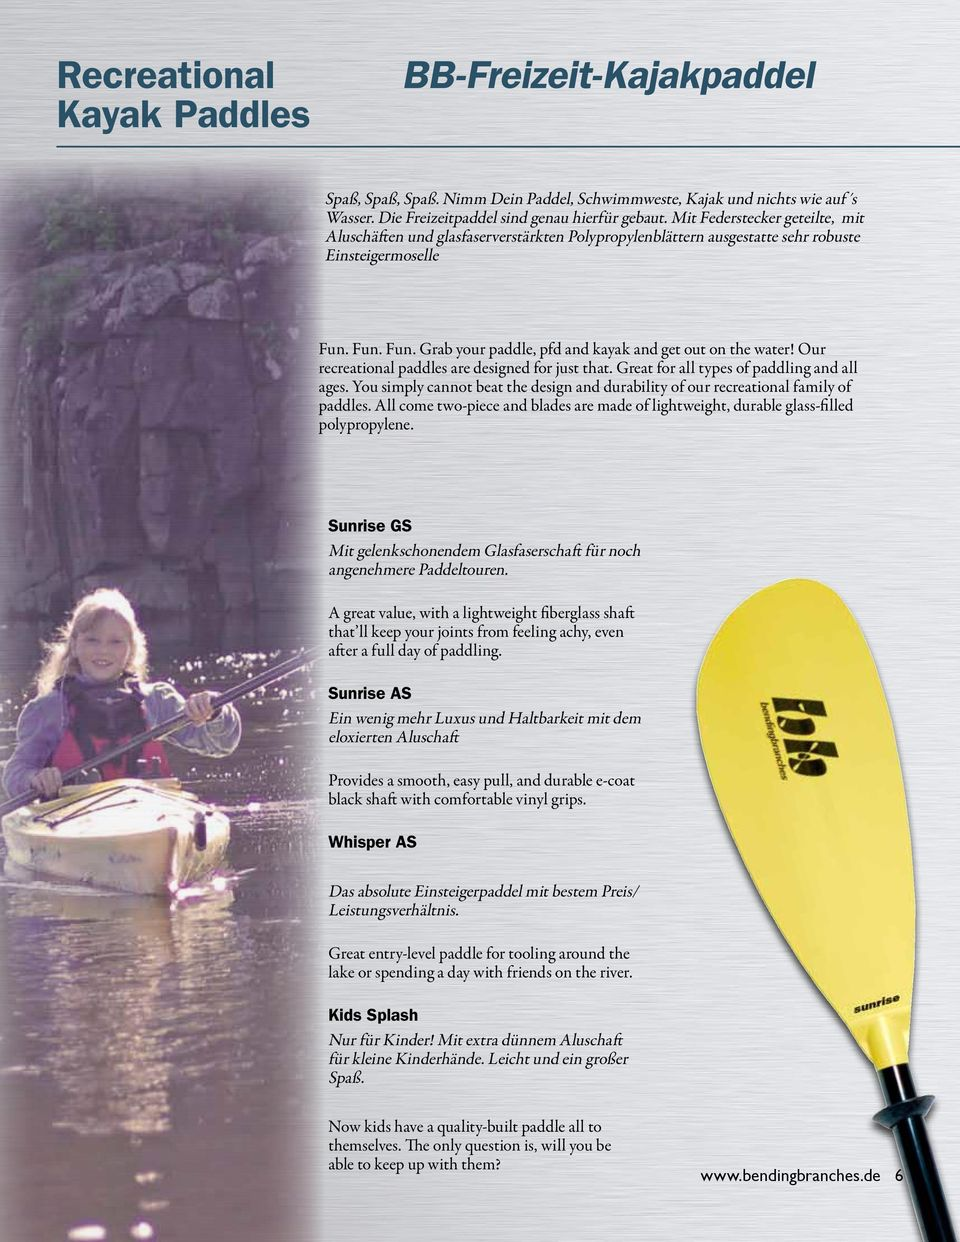 Our recreational paddles are designed for just that. Great for all types of paddling and all ages. You simply cannot beat the design and durability of our recreational family of paddles.